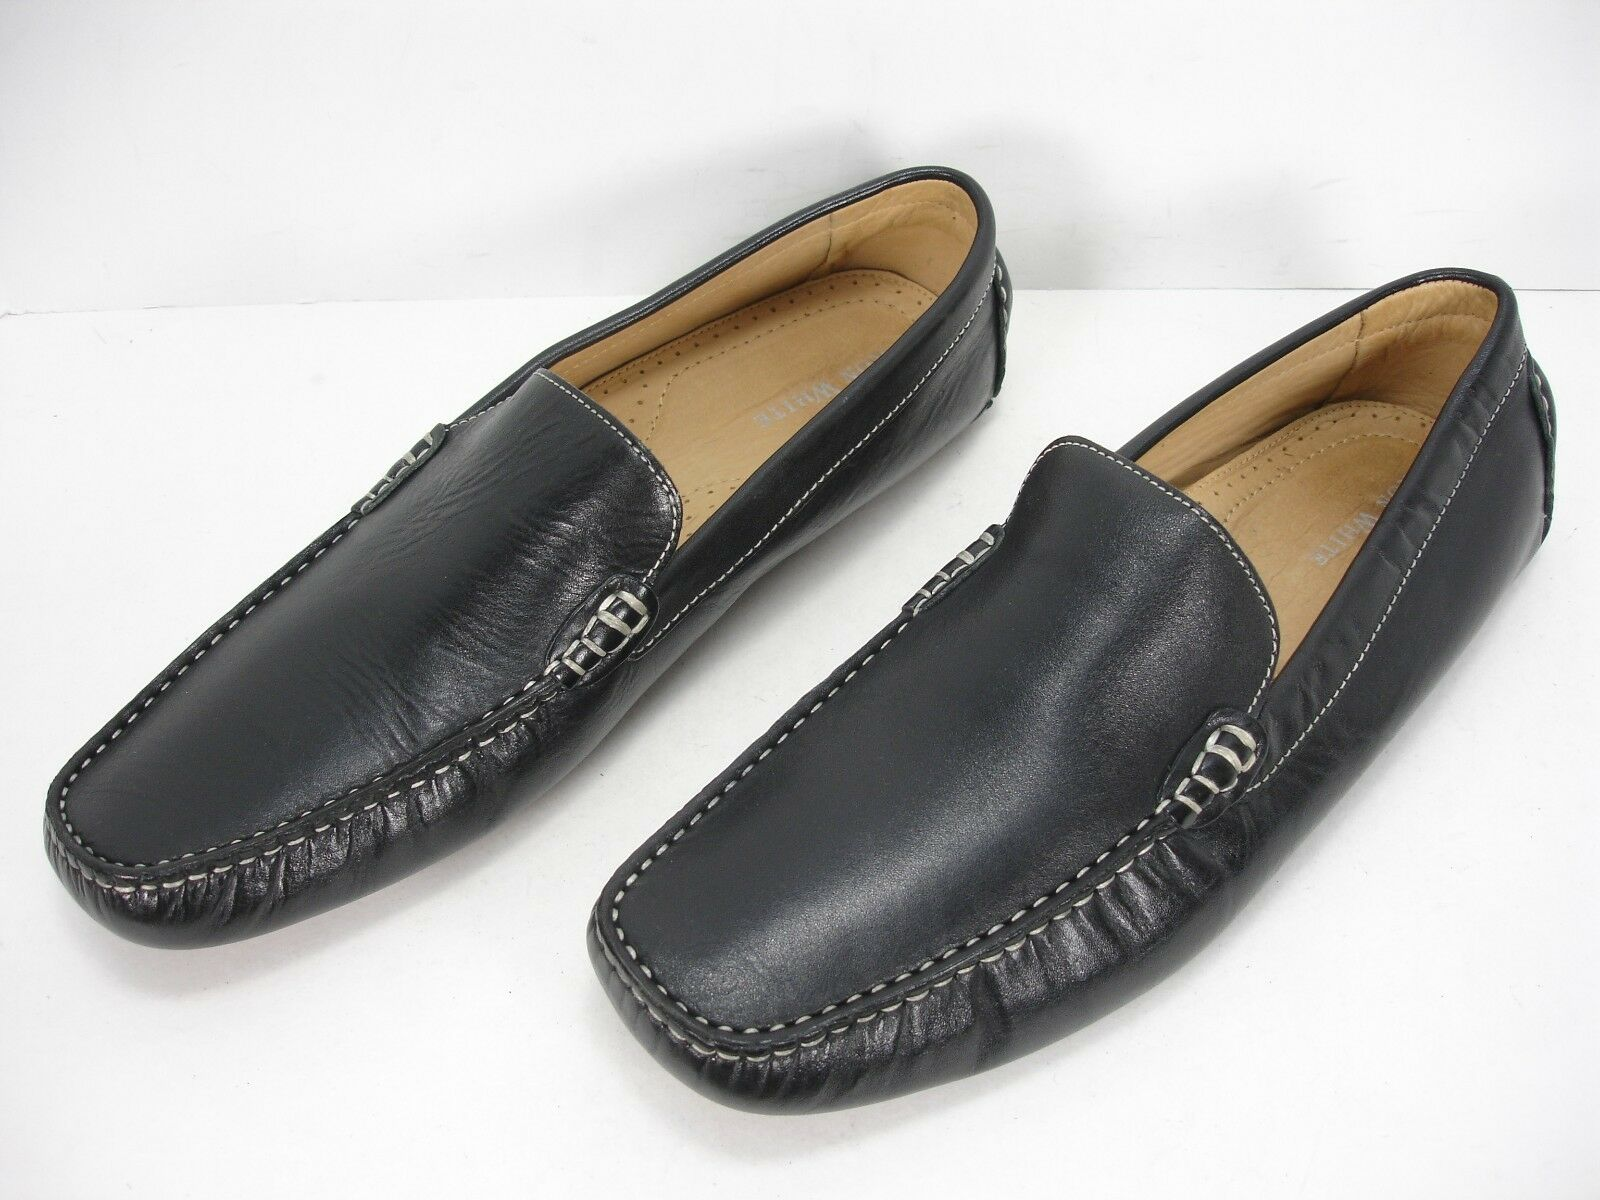 RON WHITE BLACK LEATHER SLIP ON LOAFERS DRIVING SHOES MEN'S 11.5 M